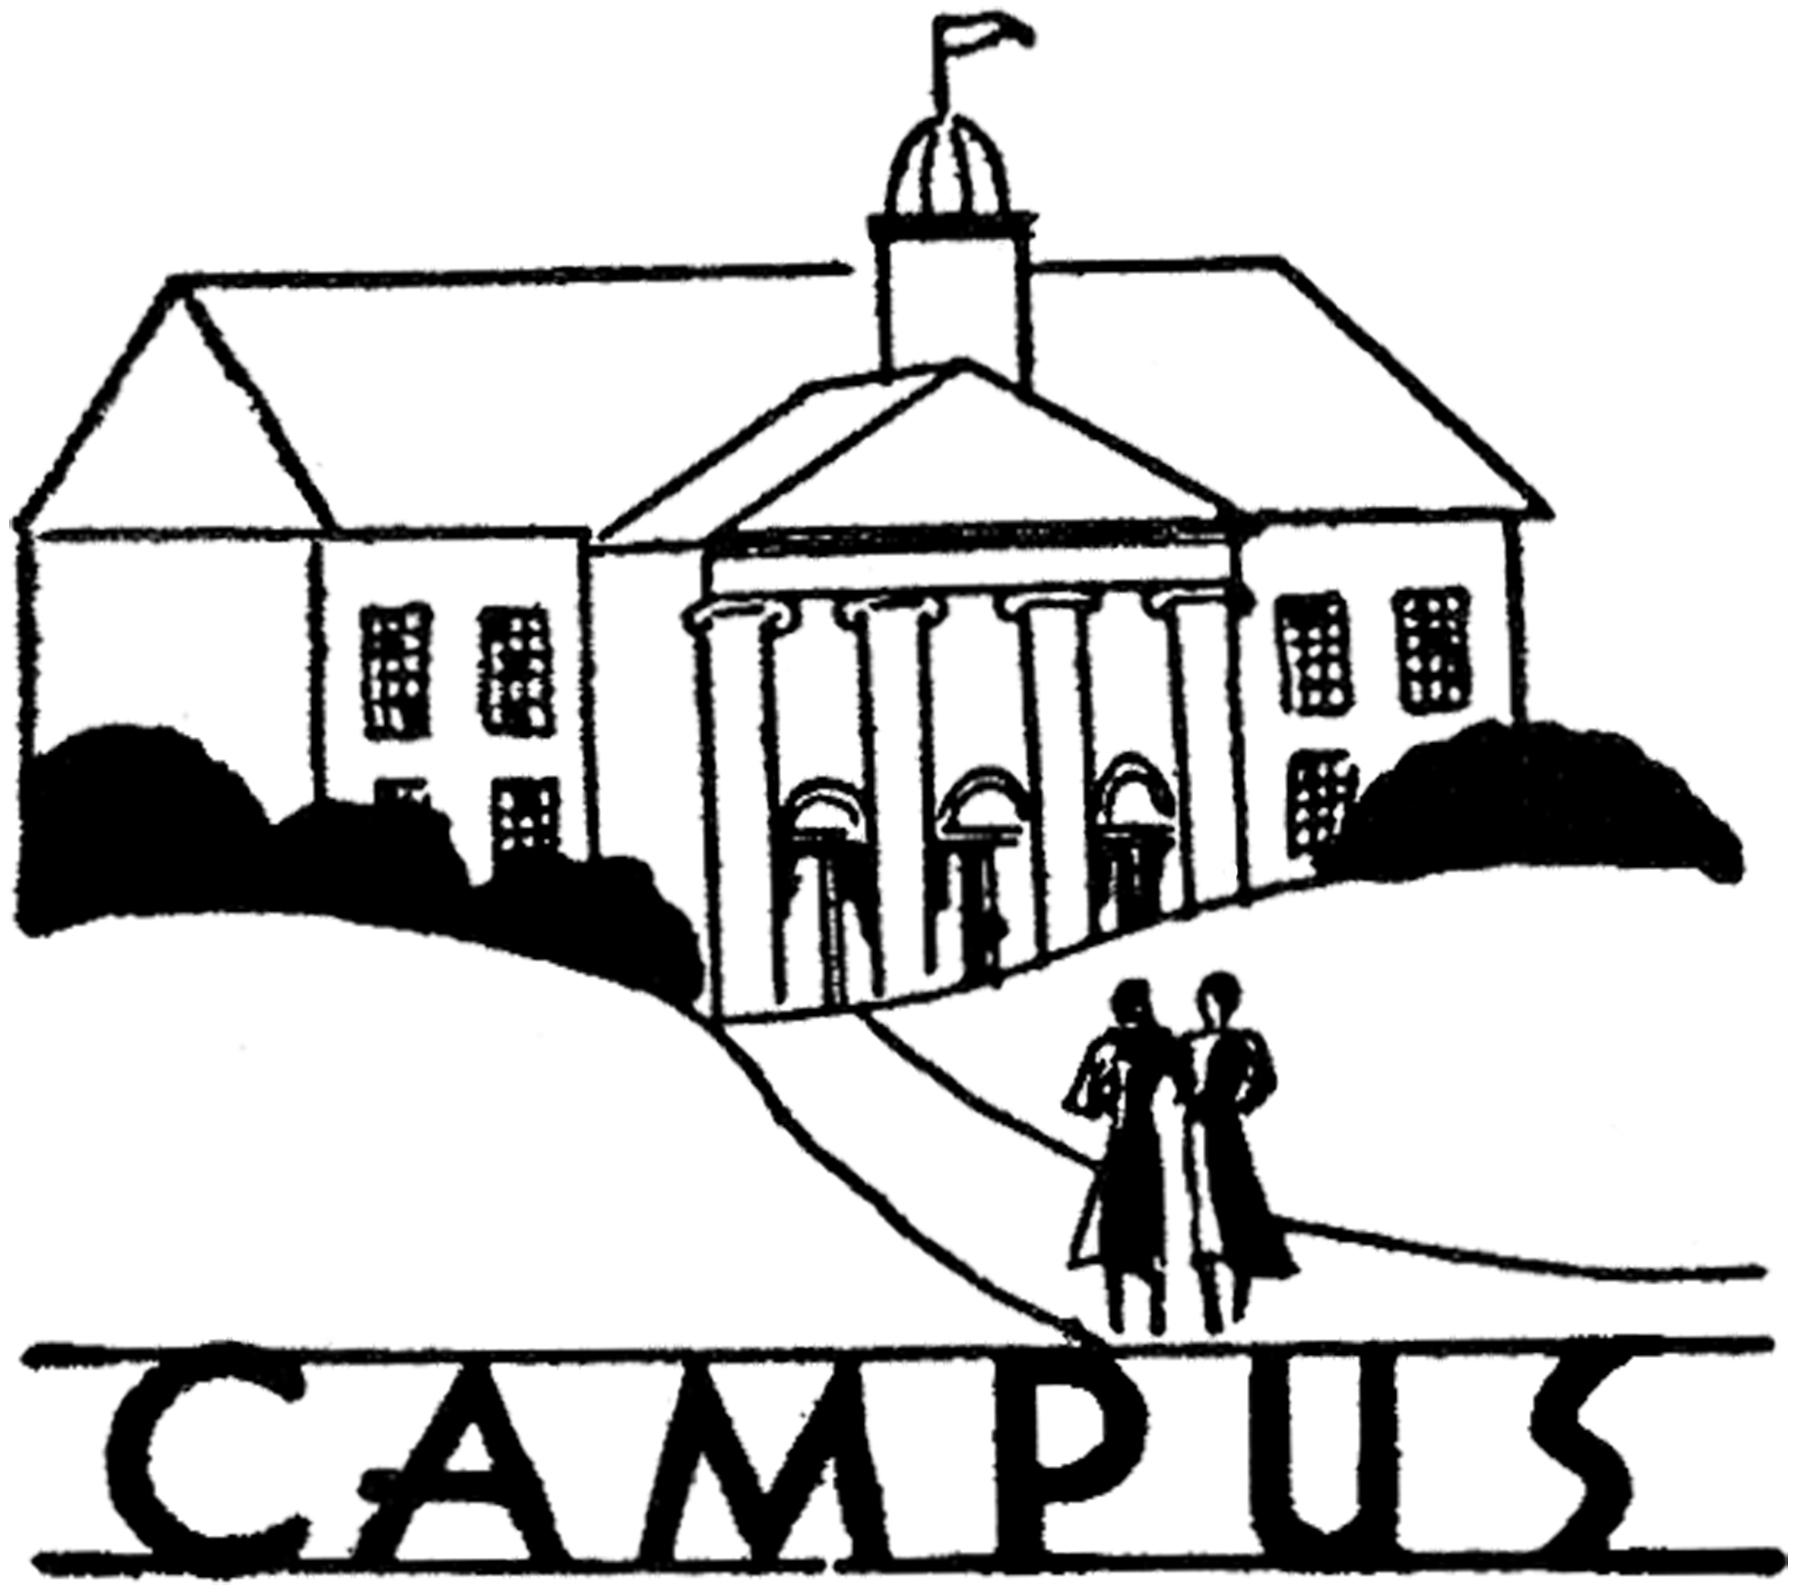 Vintage College Campus Image! - The Graphics Fairy